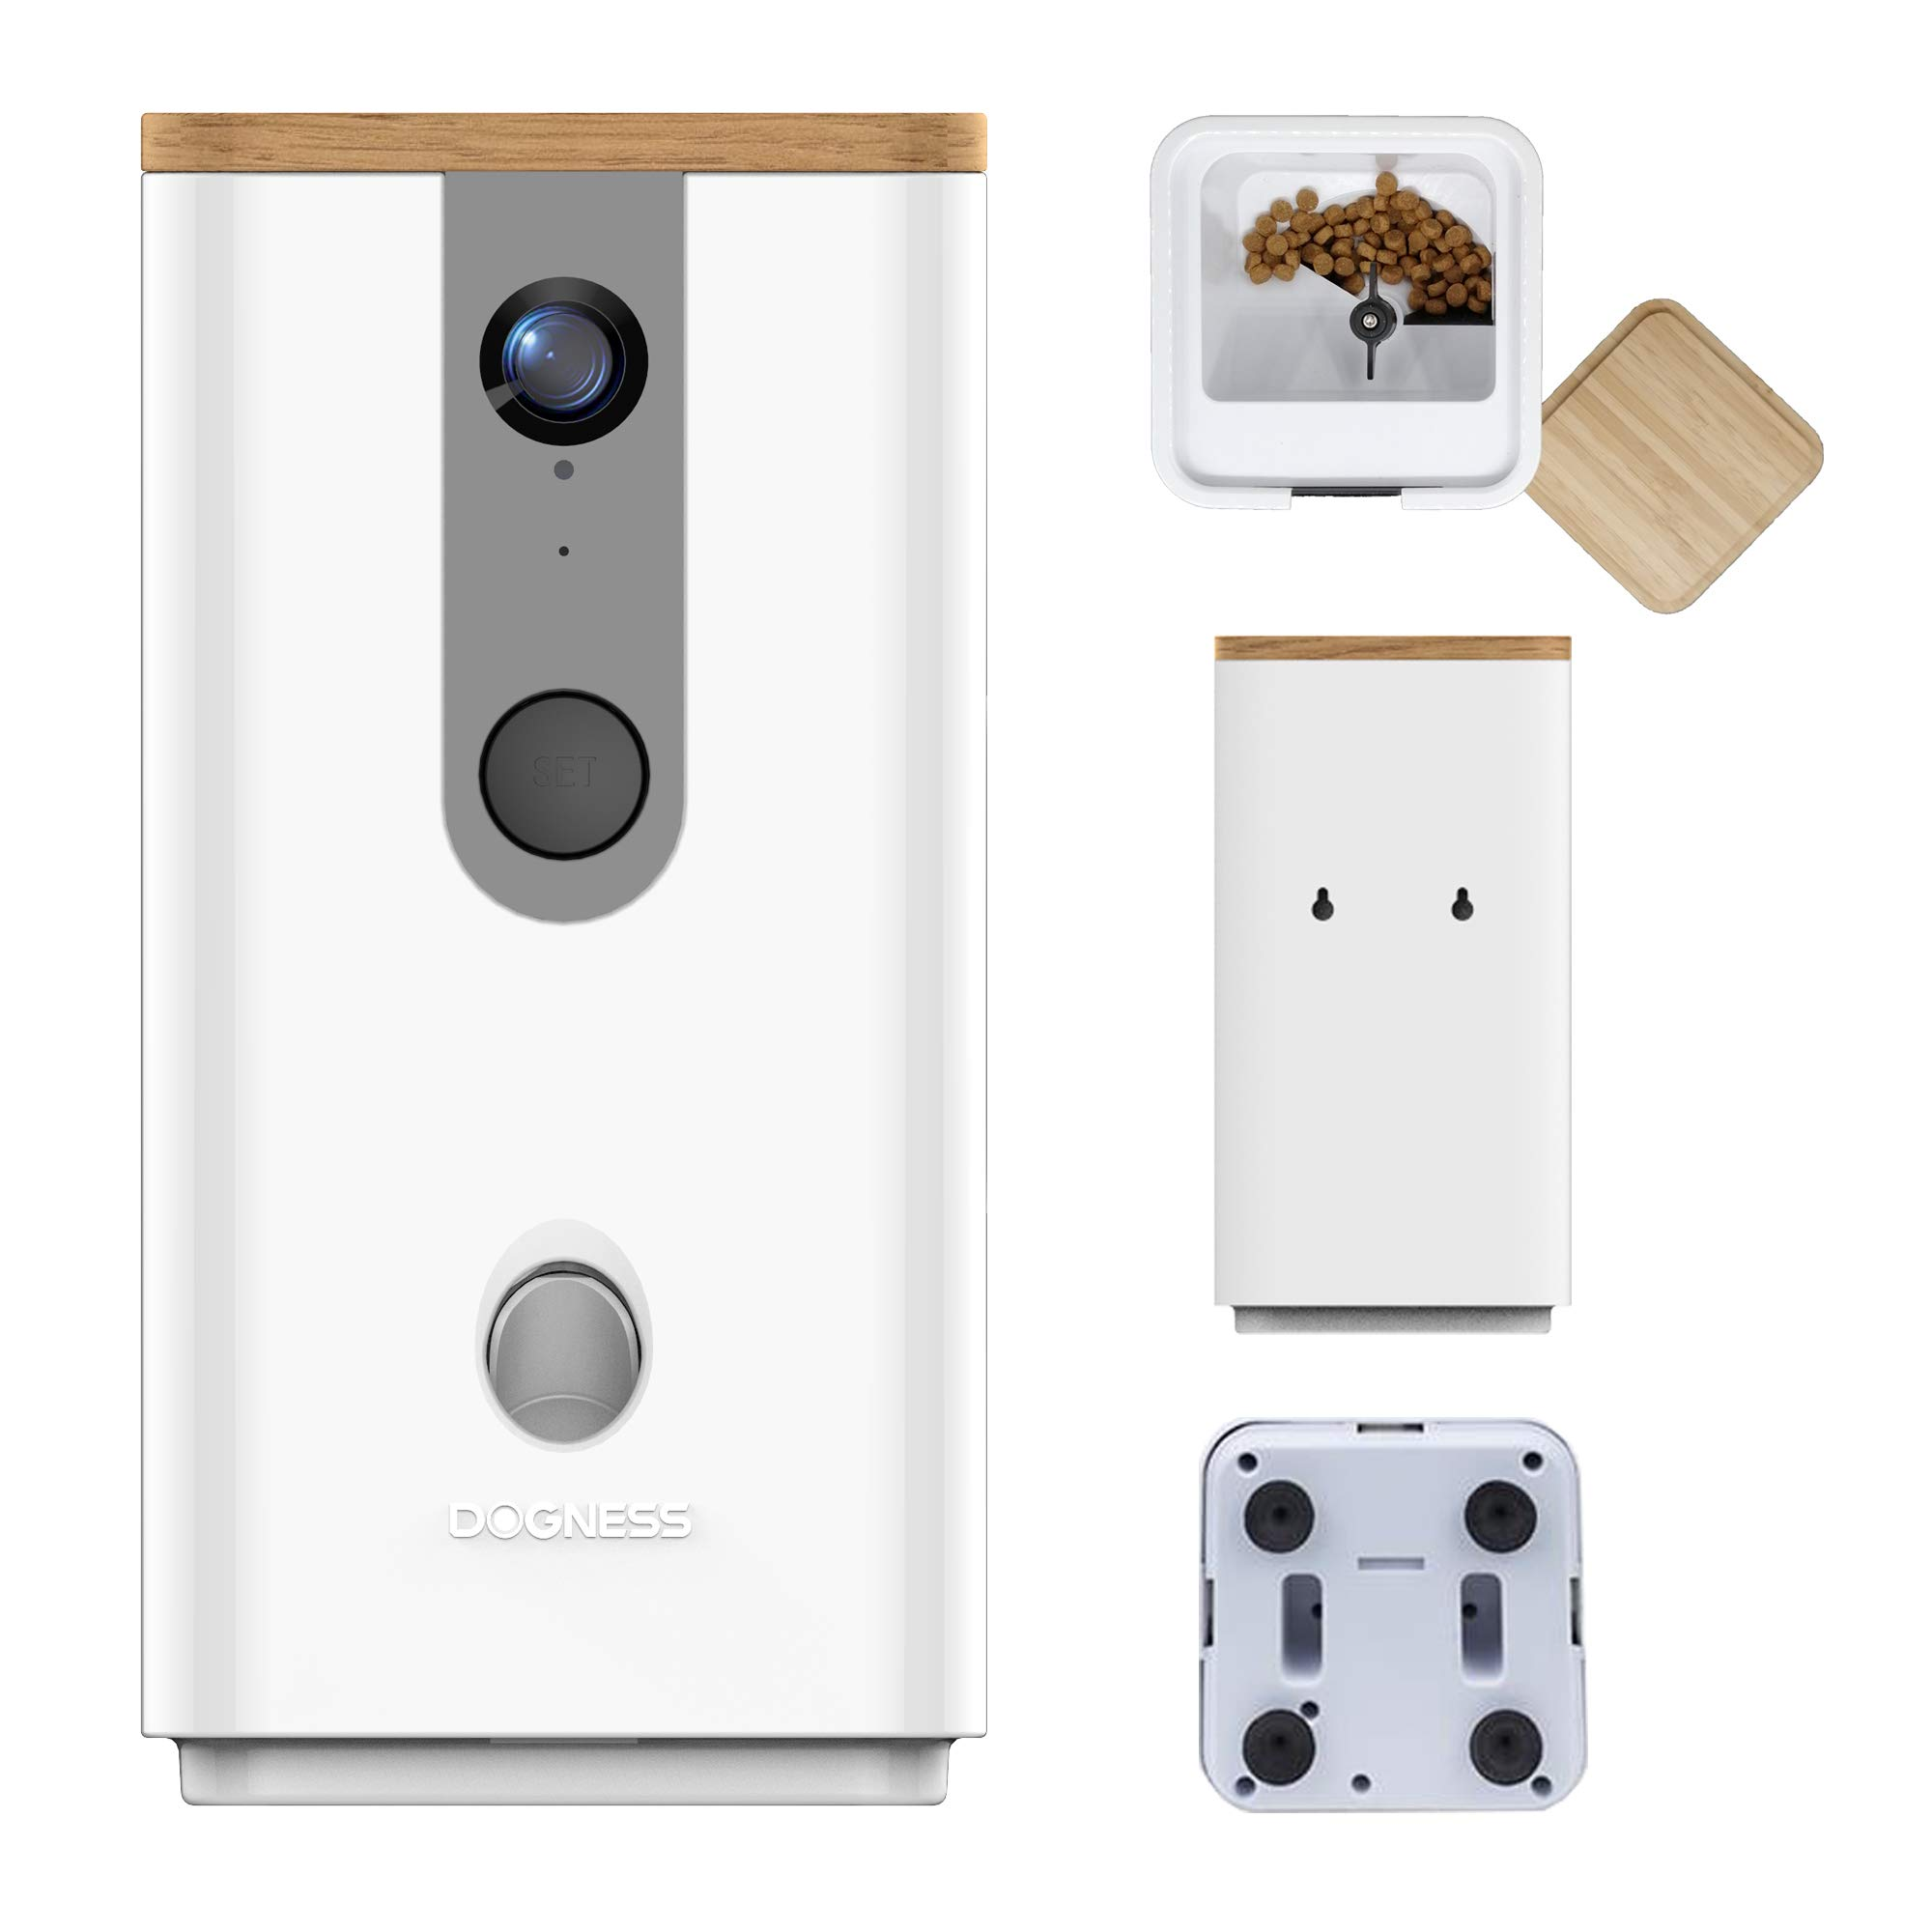 DOGNESS Dog Camera Treat Dispenser,HD Video WiFi Pet Camera with 2-Way Audio and Night Vision,Monitor Your Dogs and Cats by DOGNESS (Image #8)